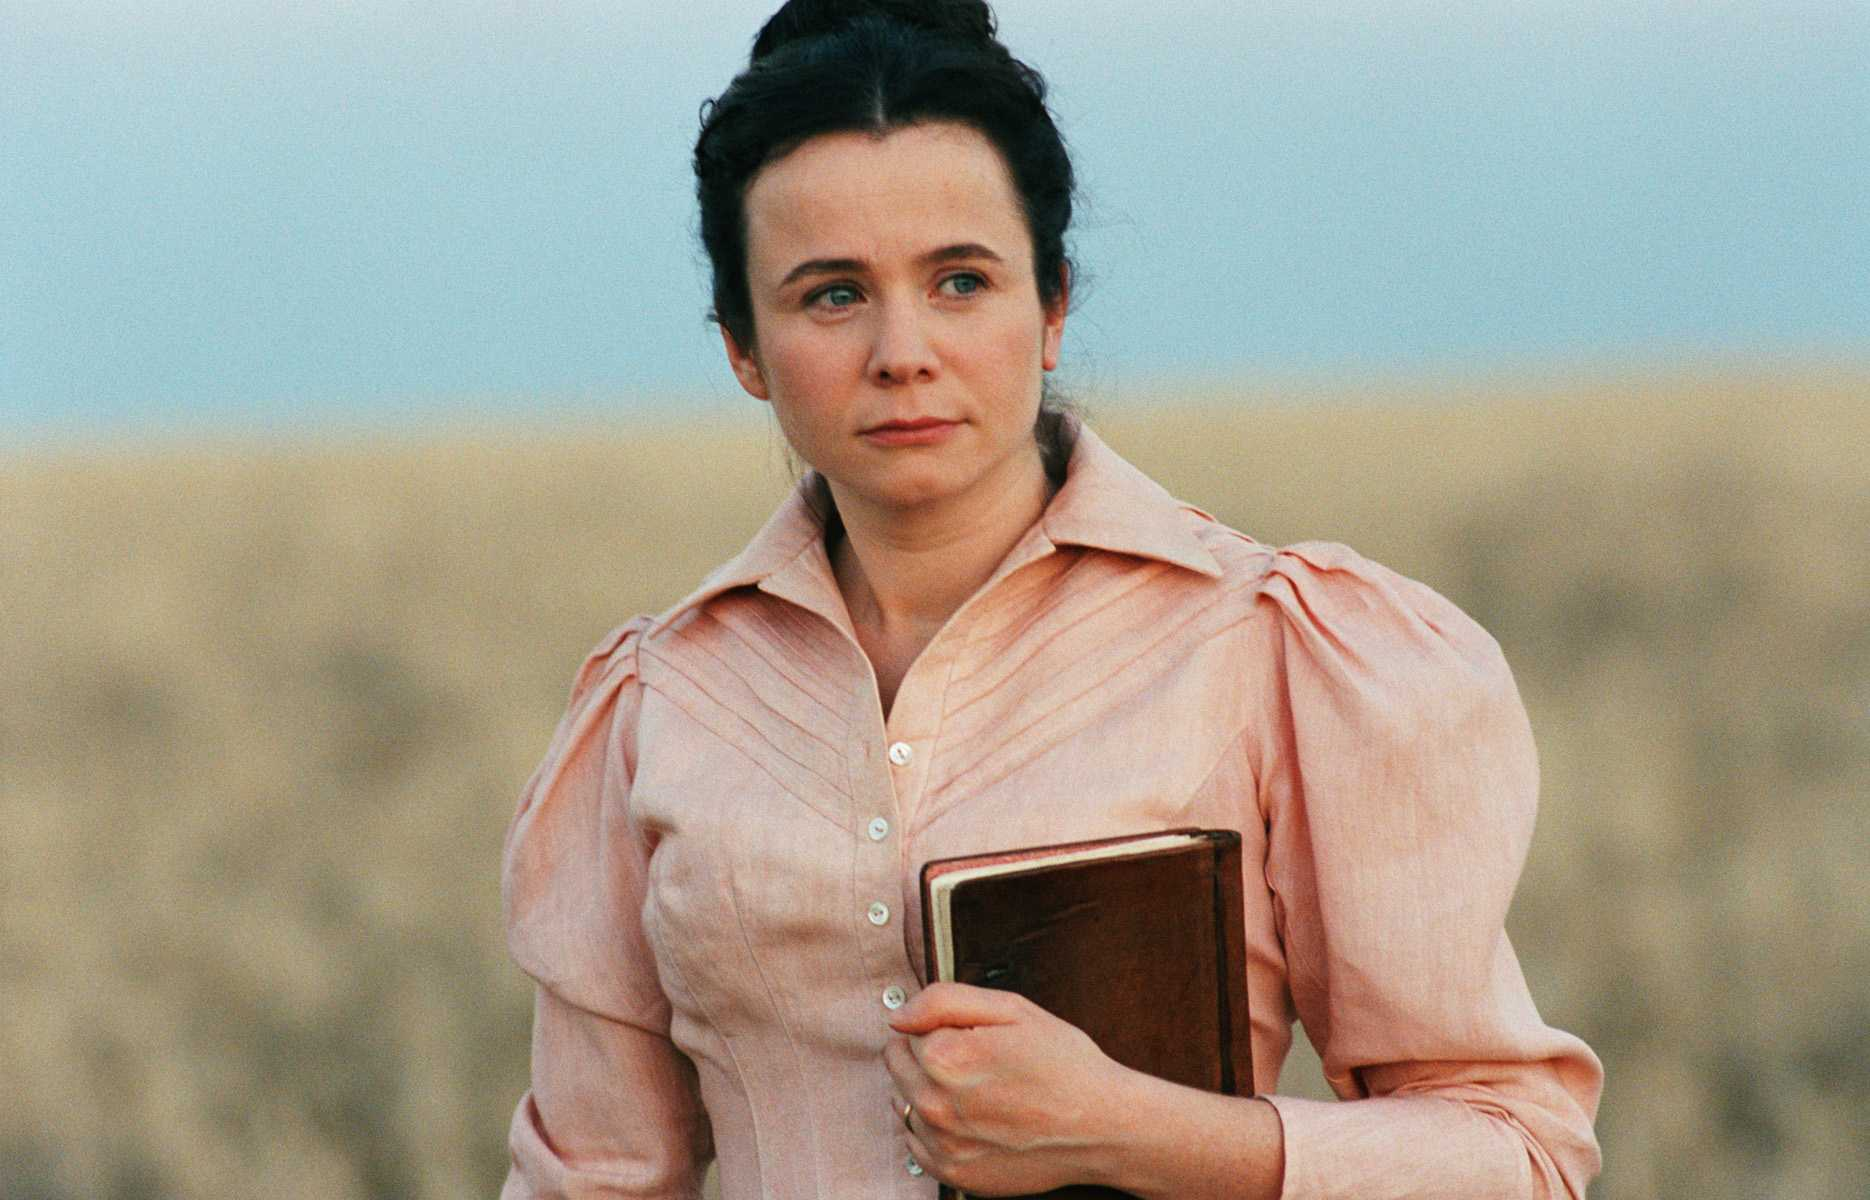 Emily Watson Wallpapers hd